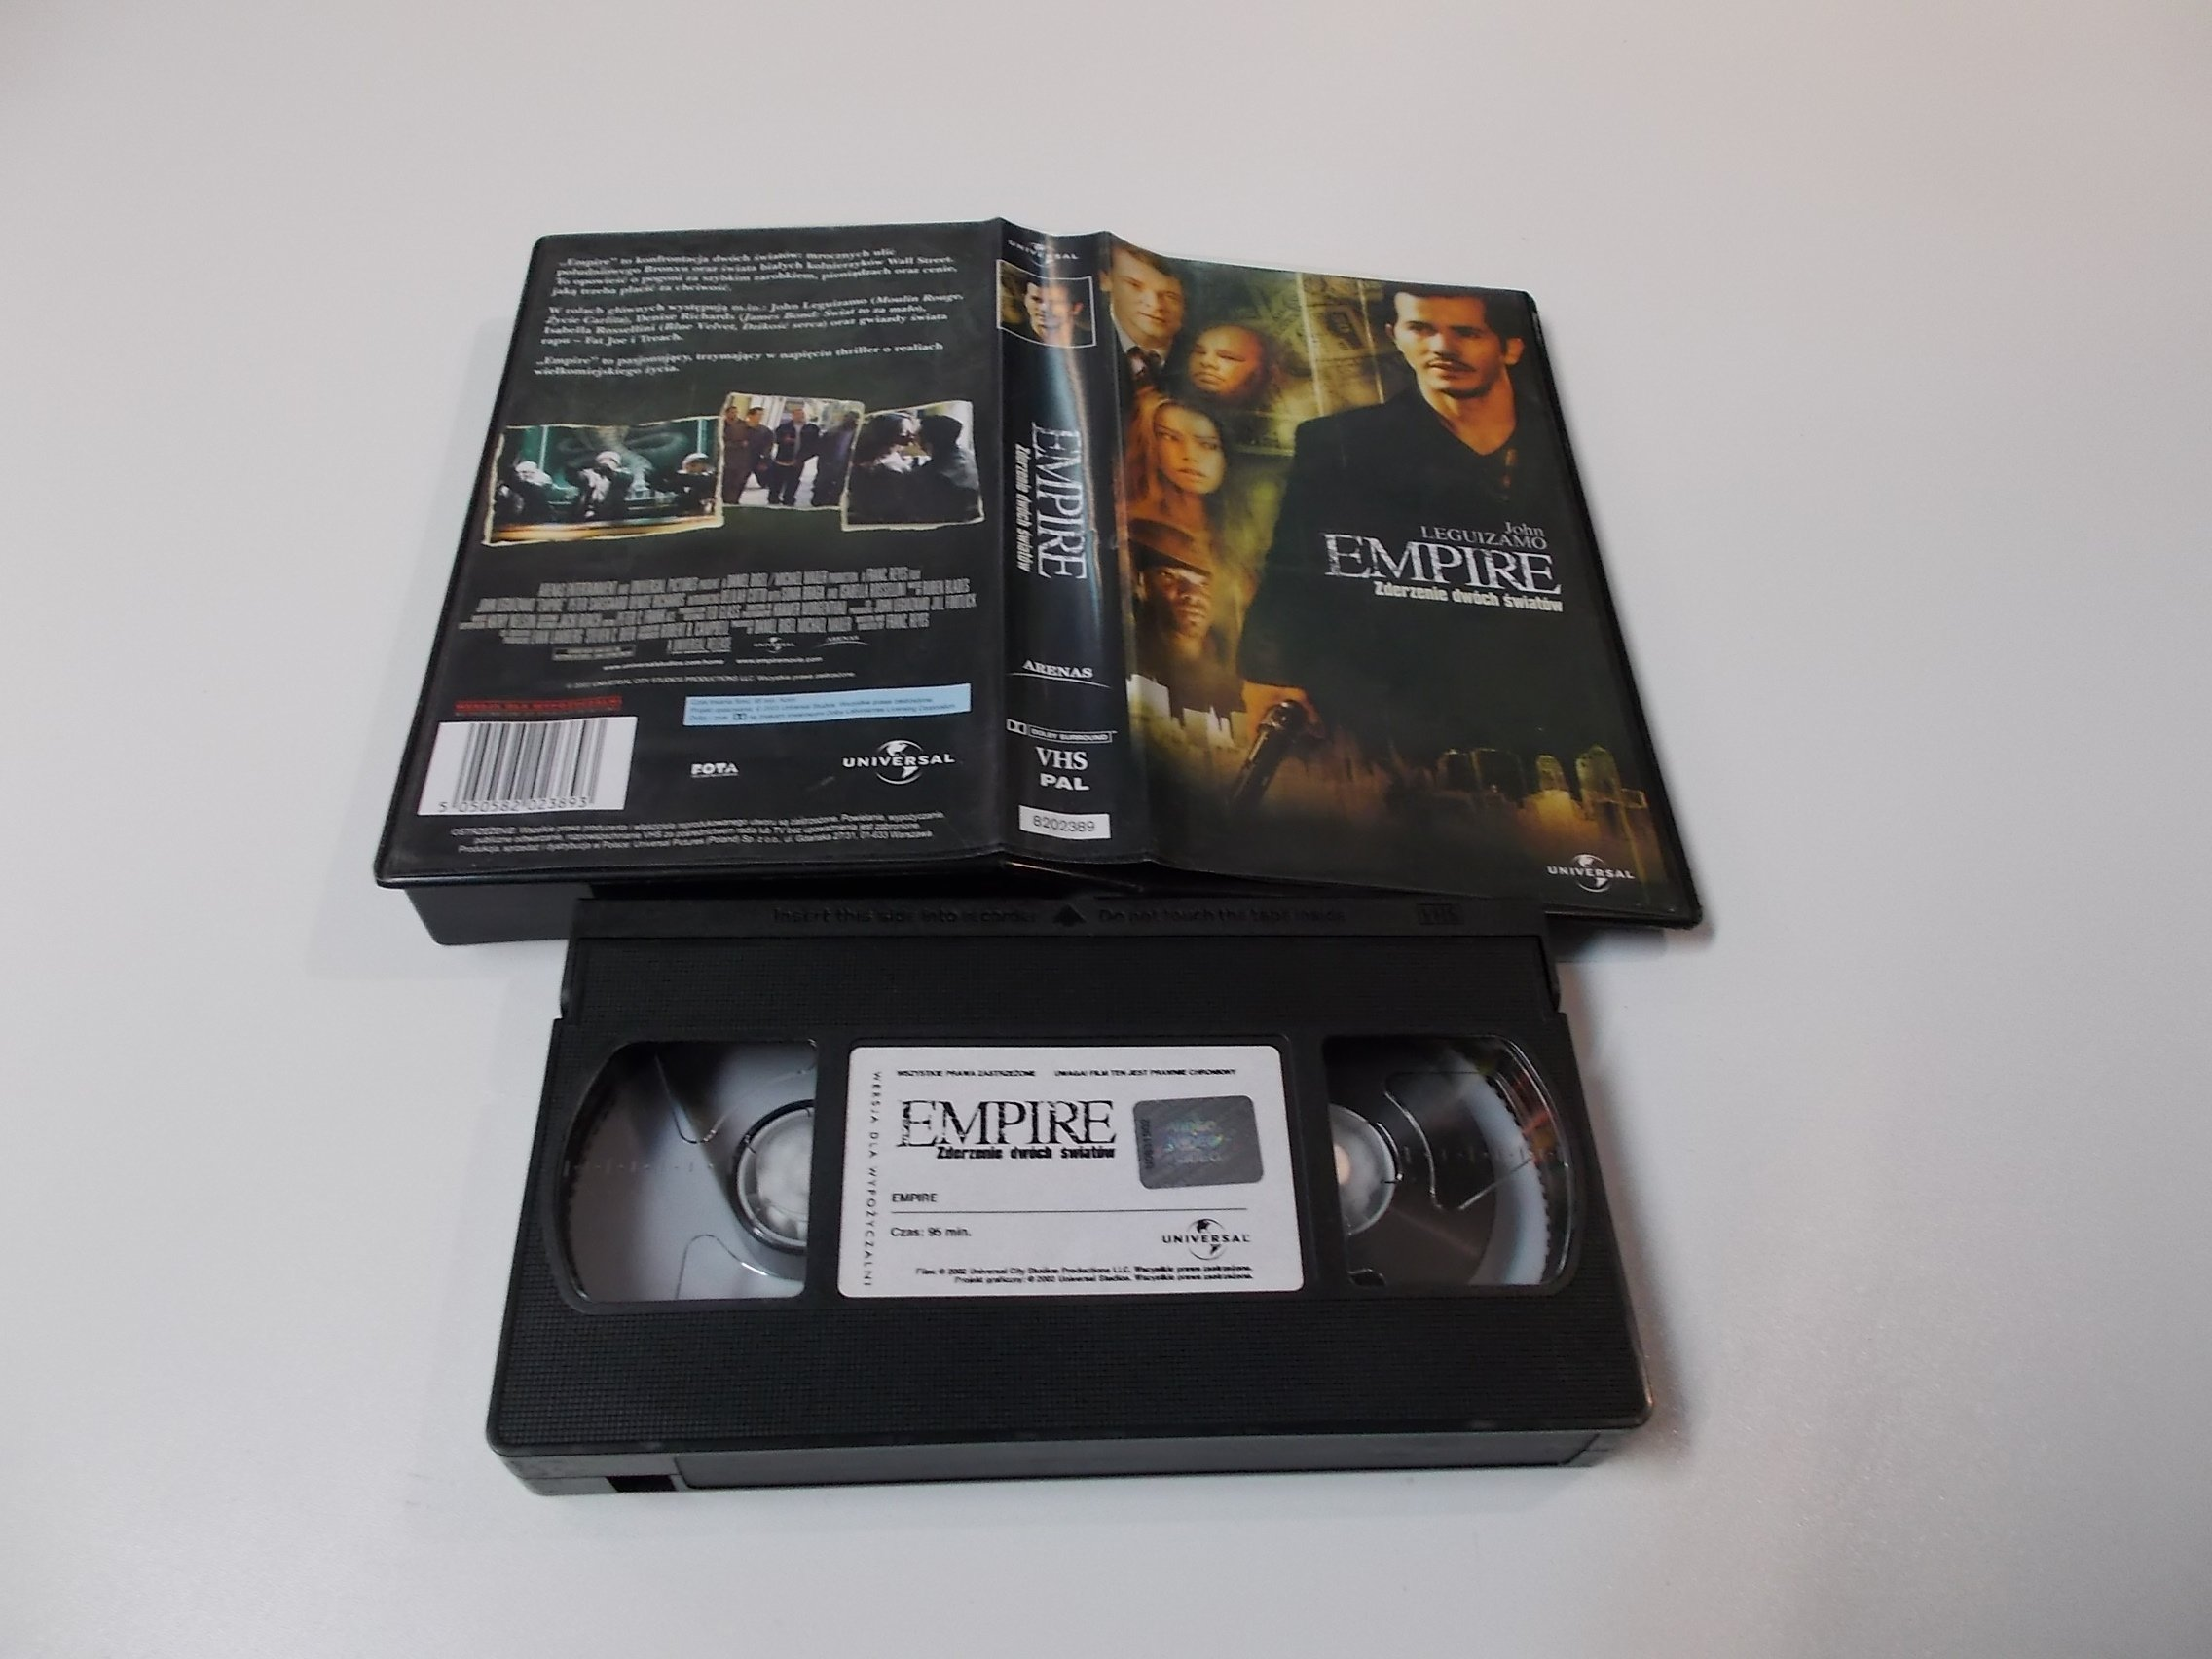 EMPIRE - VHS Kaseta Video - Opole 1621